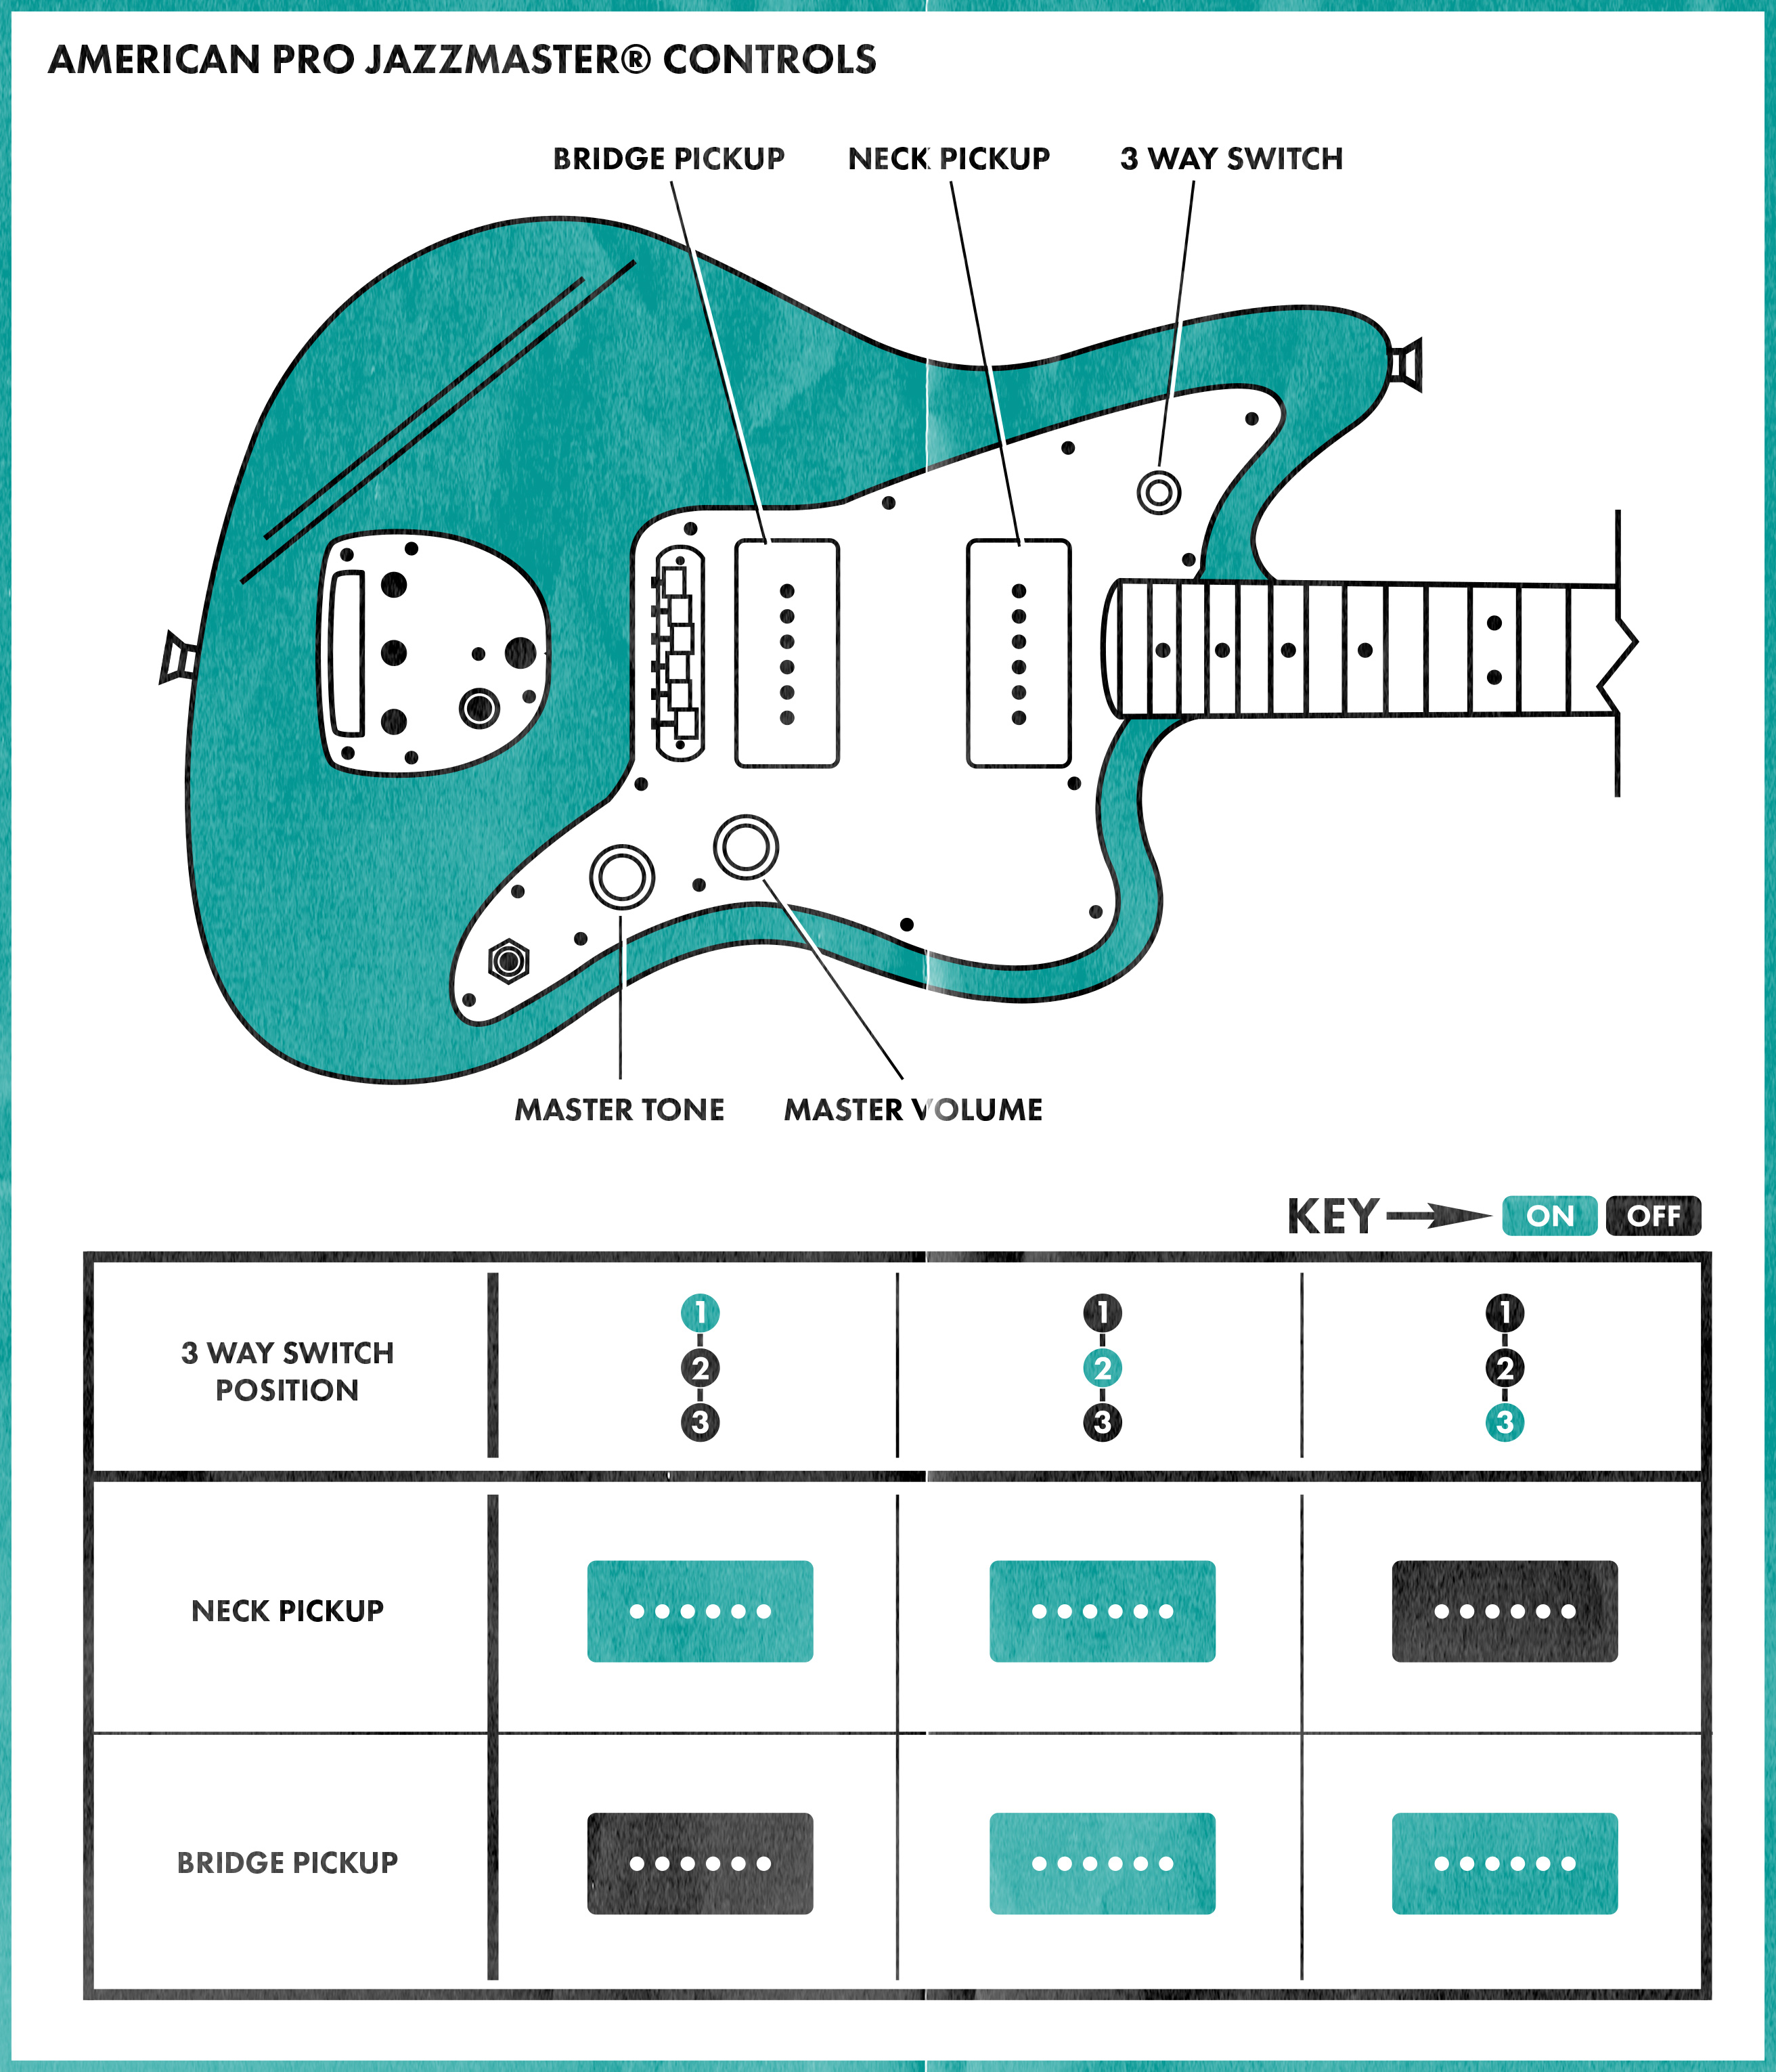 Fender Jazzmaster Wiring Change Your Idea With Diagram Design Deluxe Players Strat Controls Explained Rh Com Pickup Blacktop